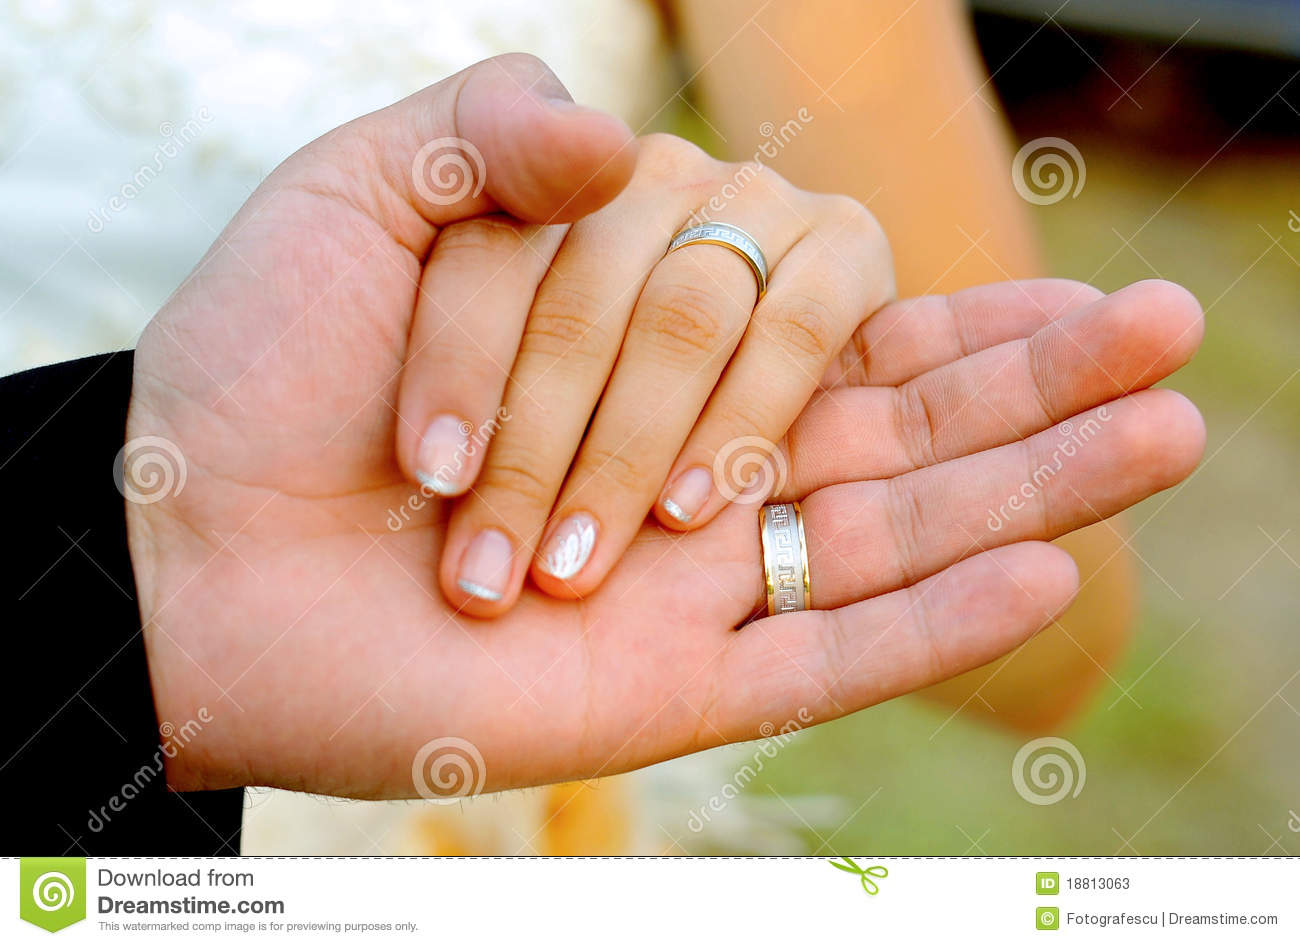 Engagement Hands stock image. Image of hand, love, touch - 18813063